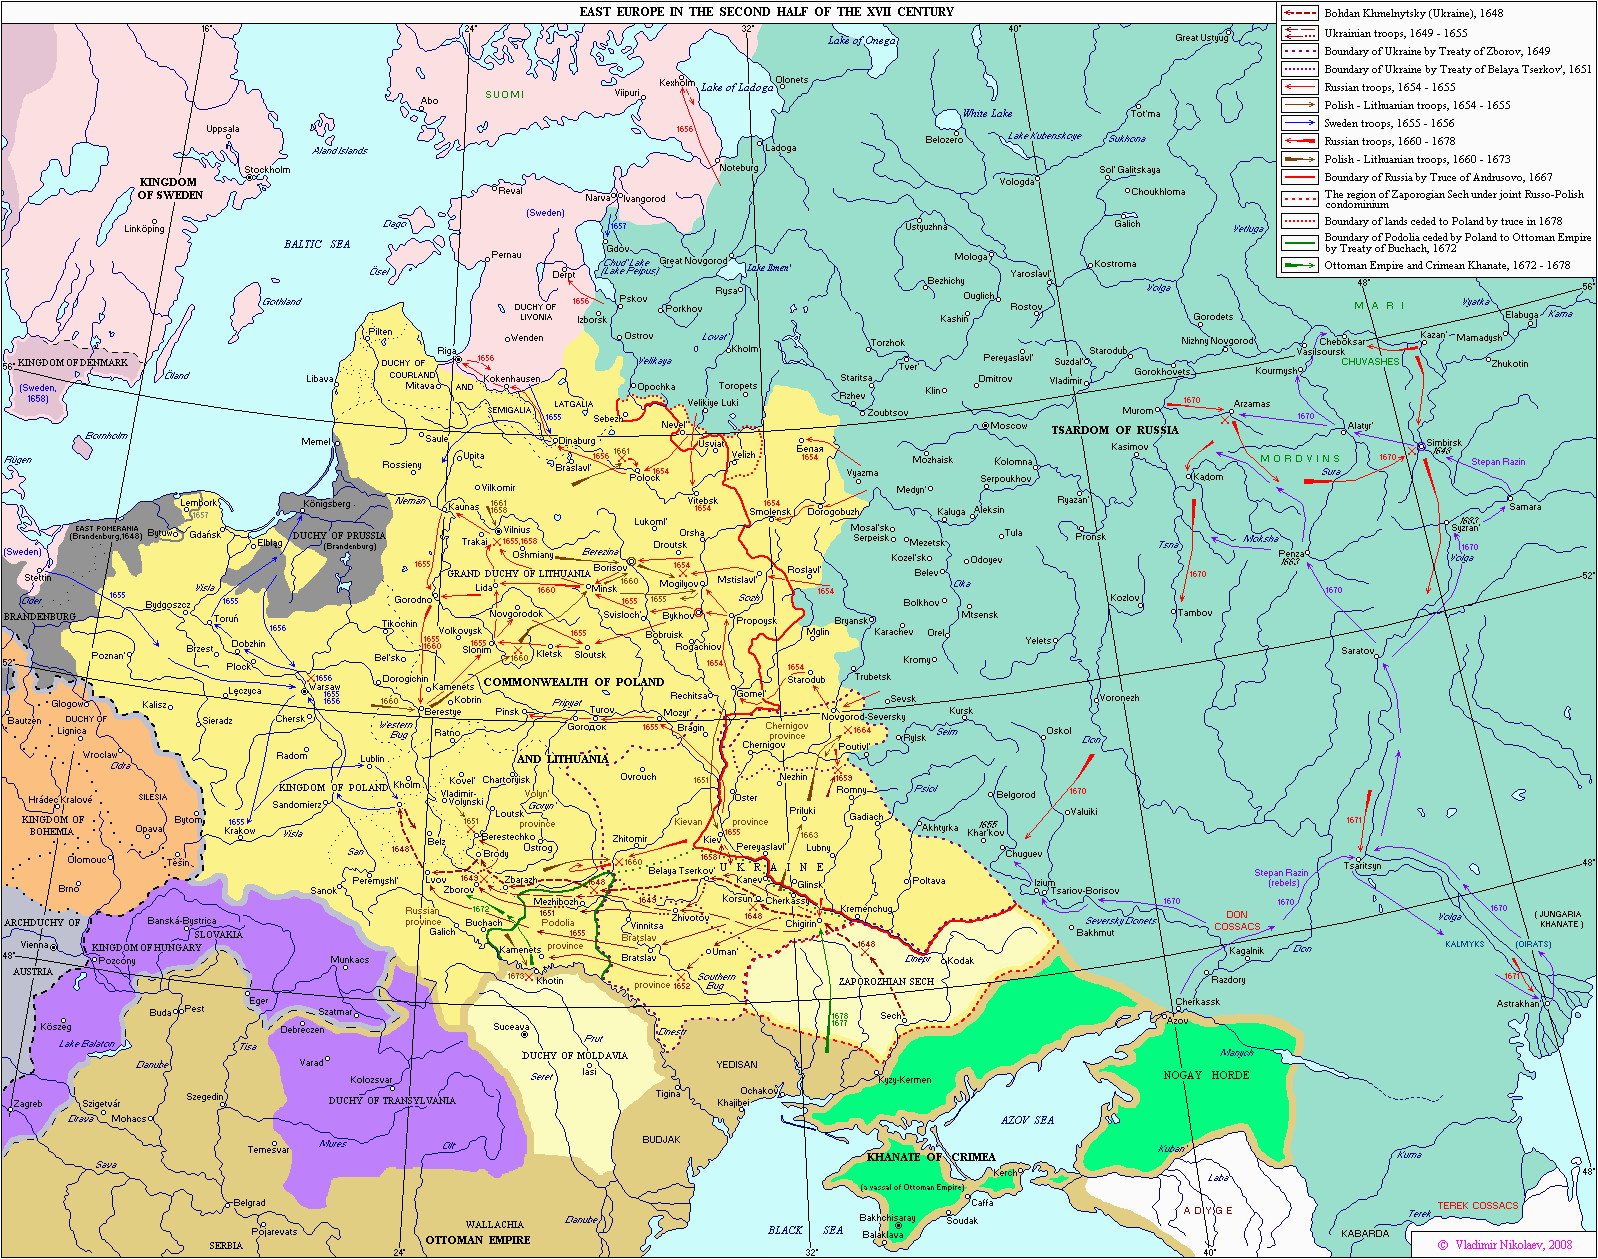 eastern europe in second half of the 17th century maps and